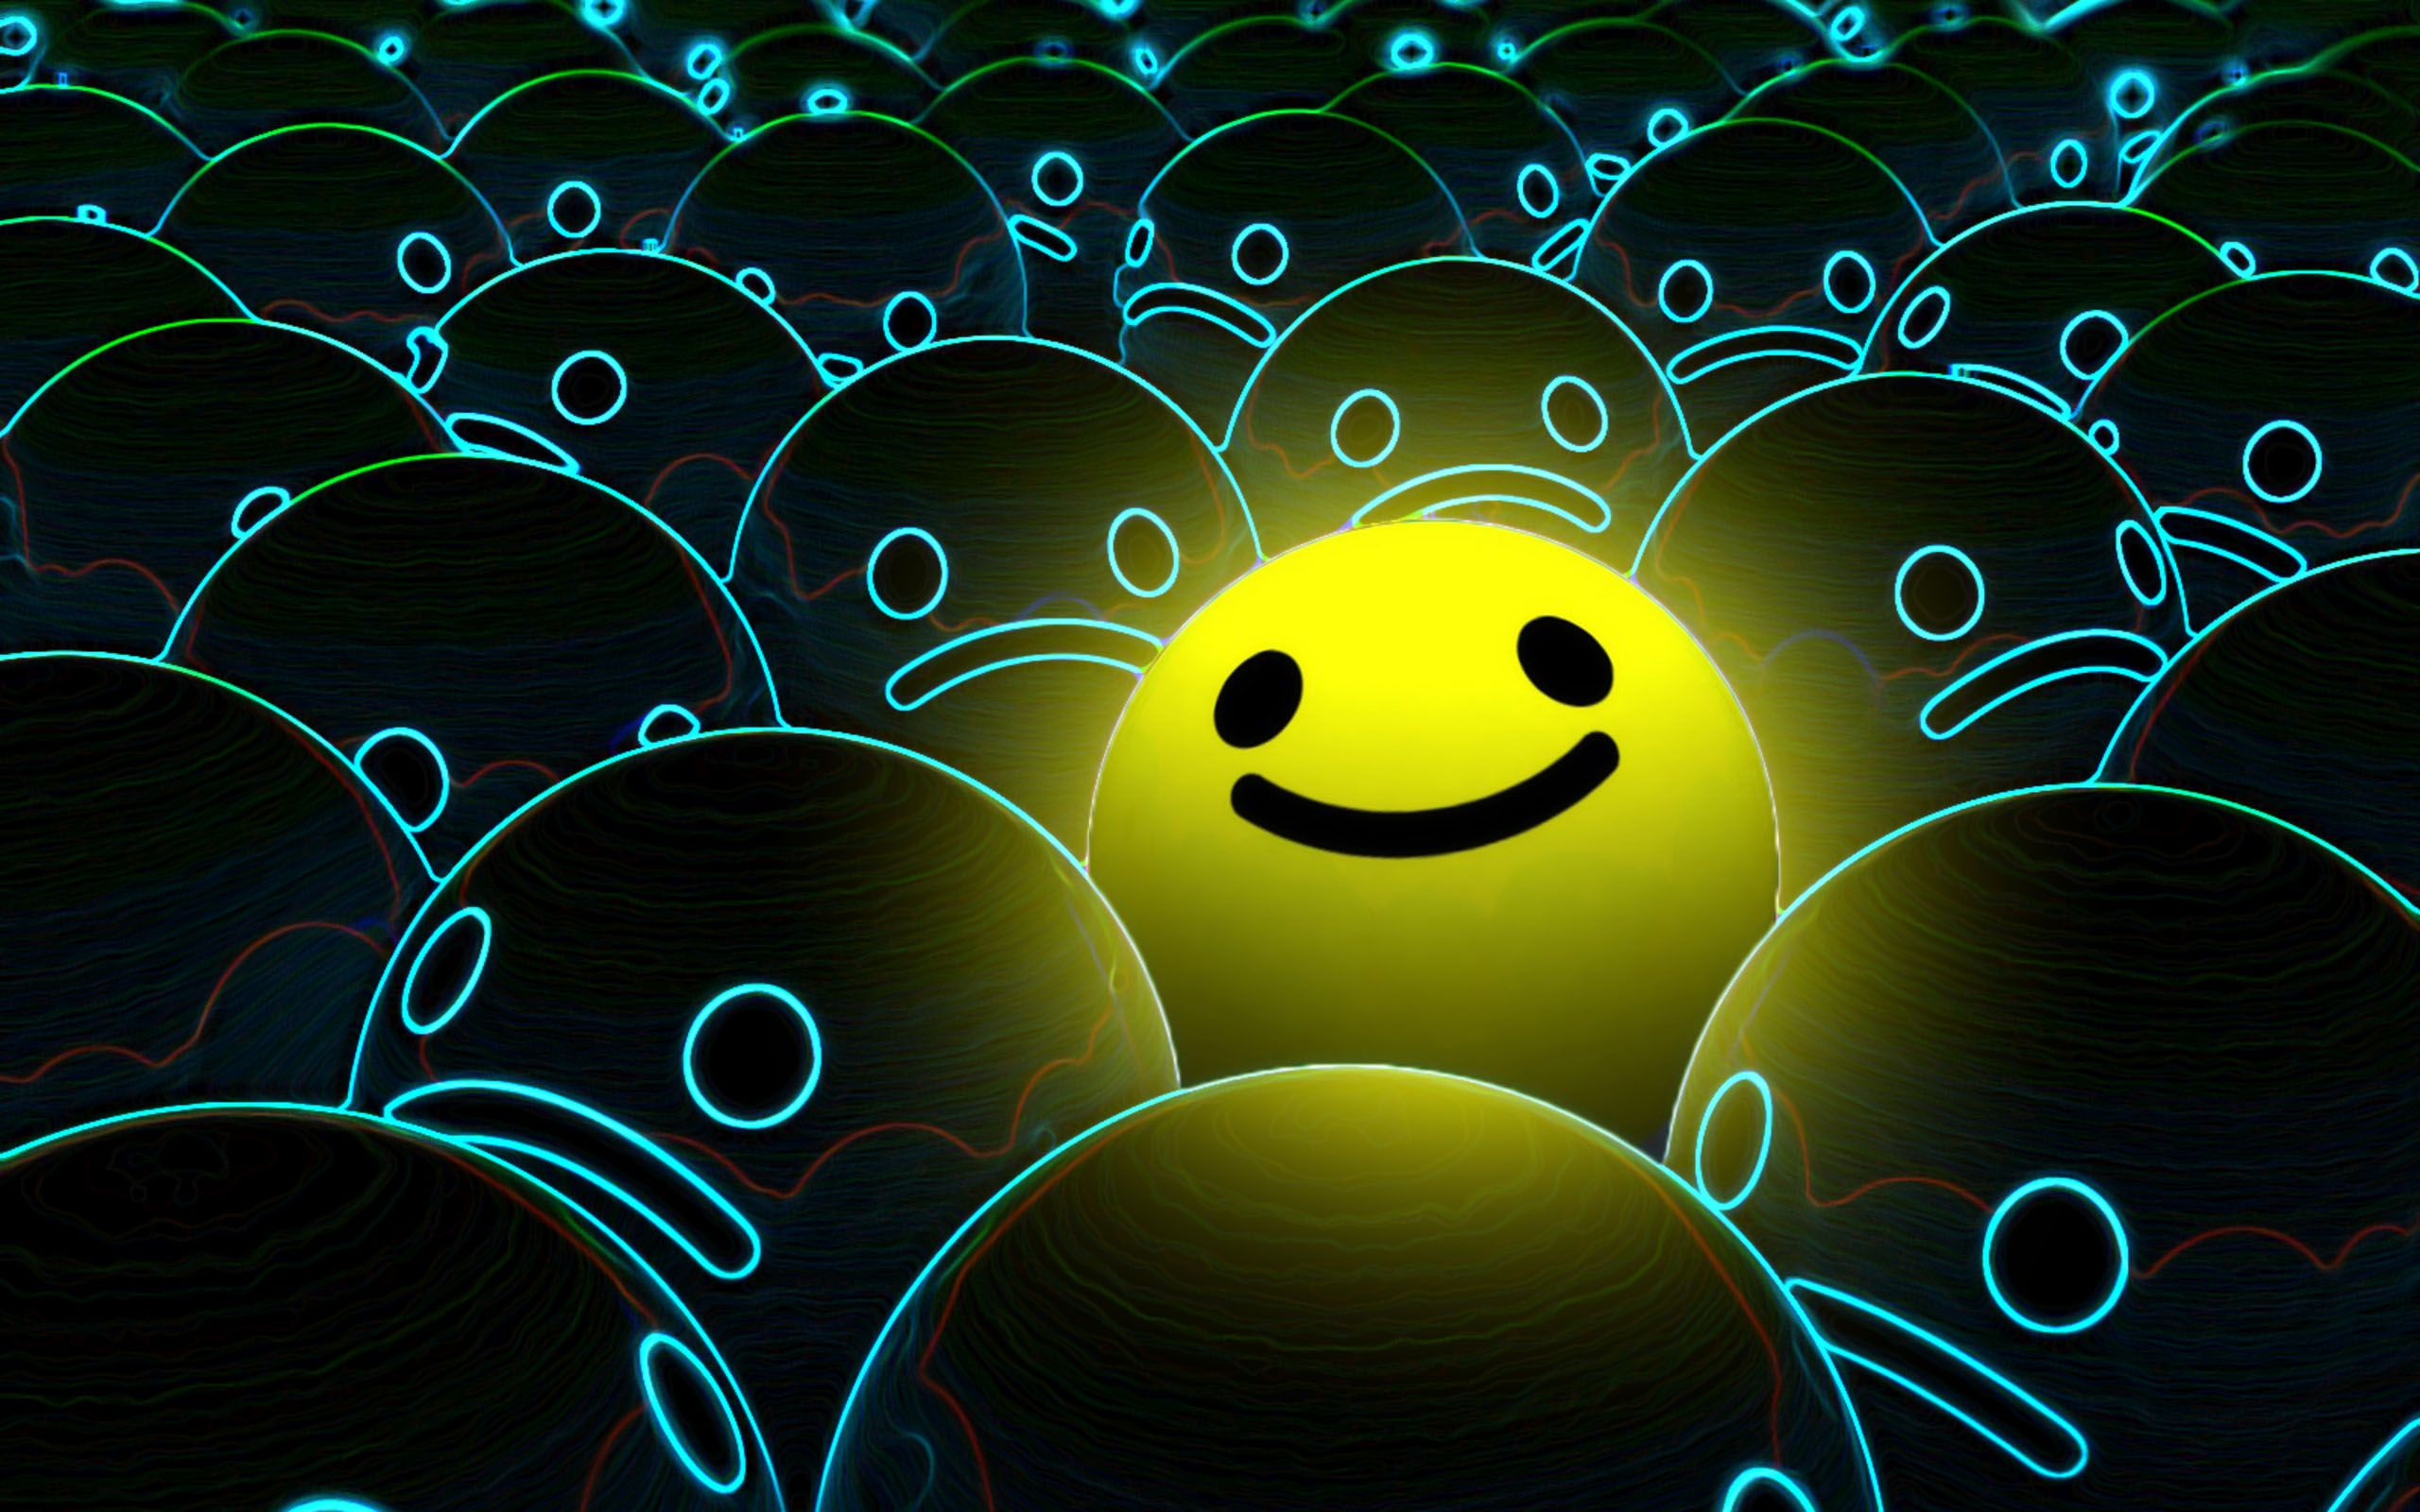 Smiley Face Wallpaper Screensavers: Wallpapers For > Animated Smiley Face Backgrounds